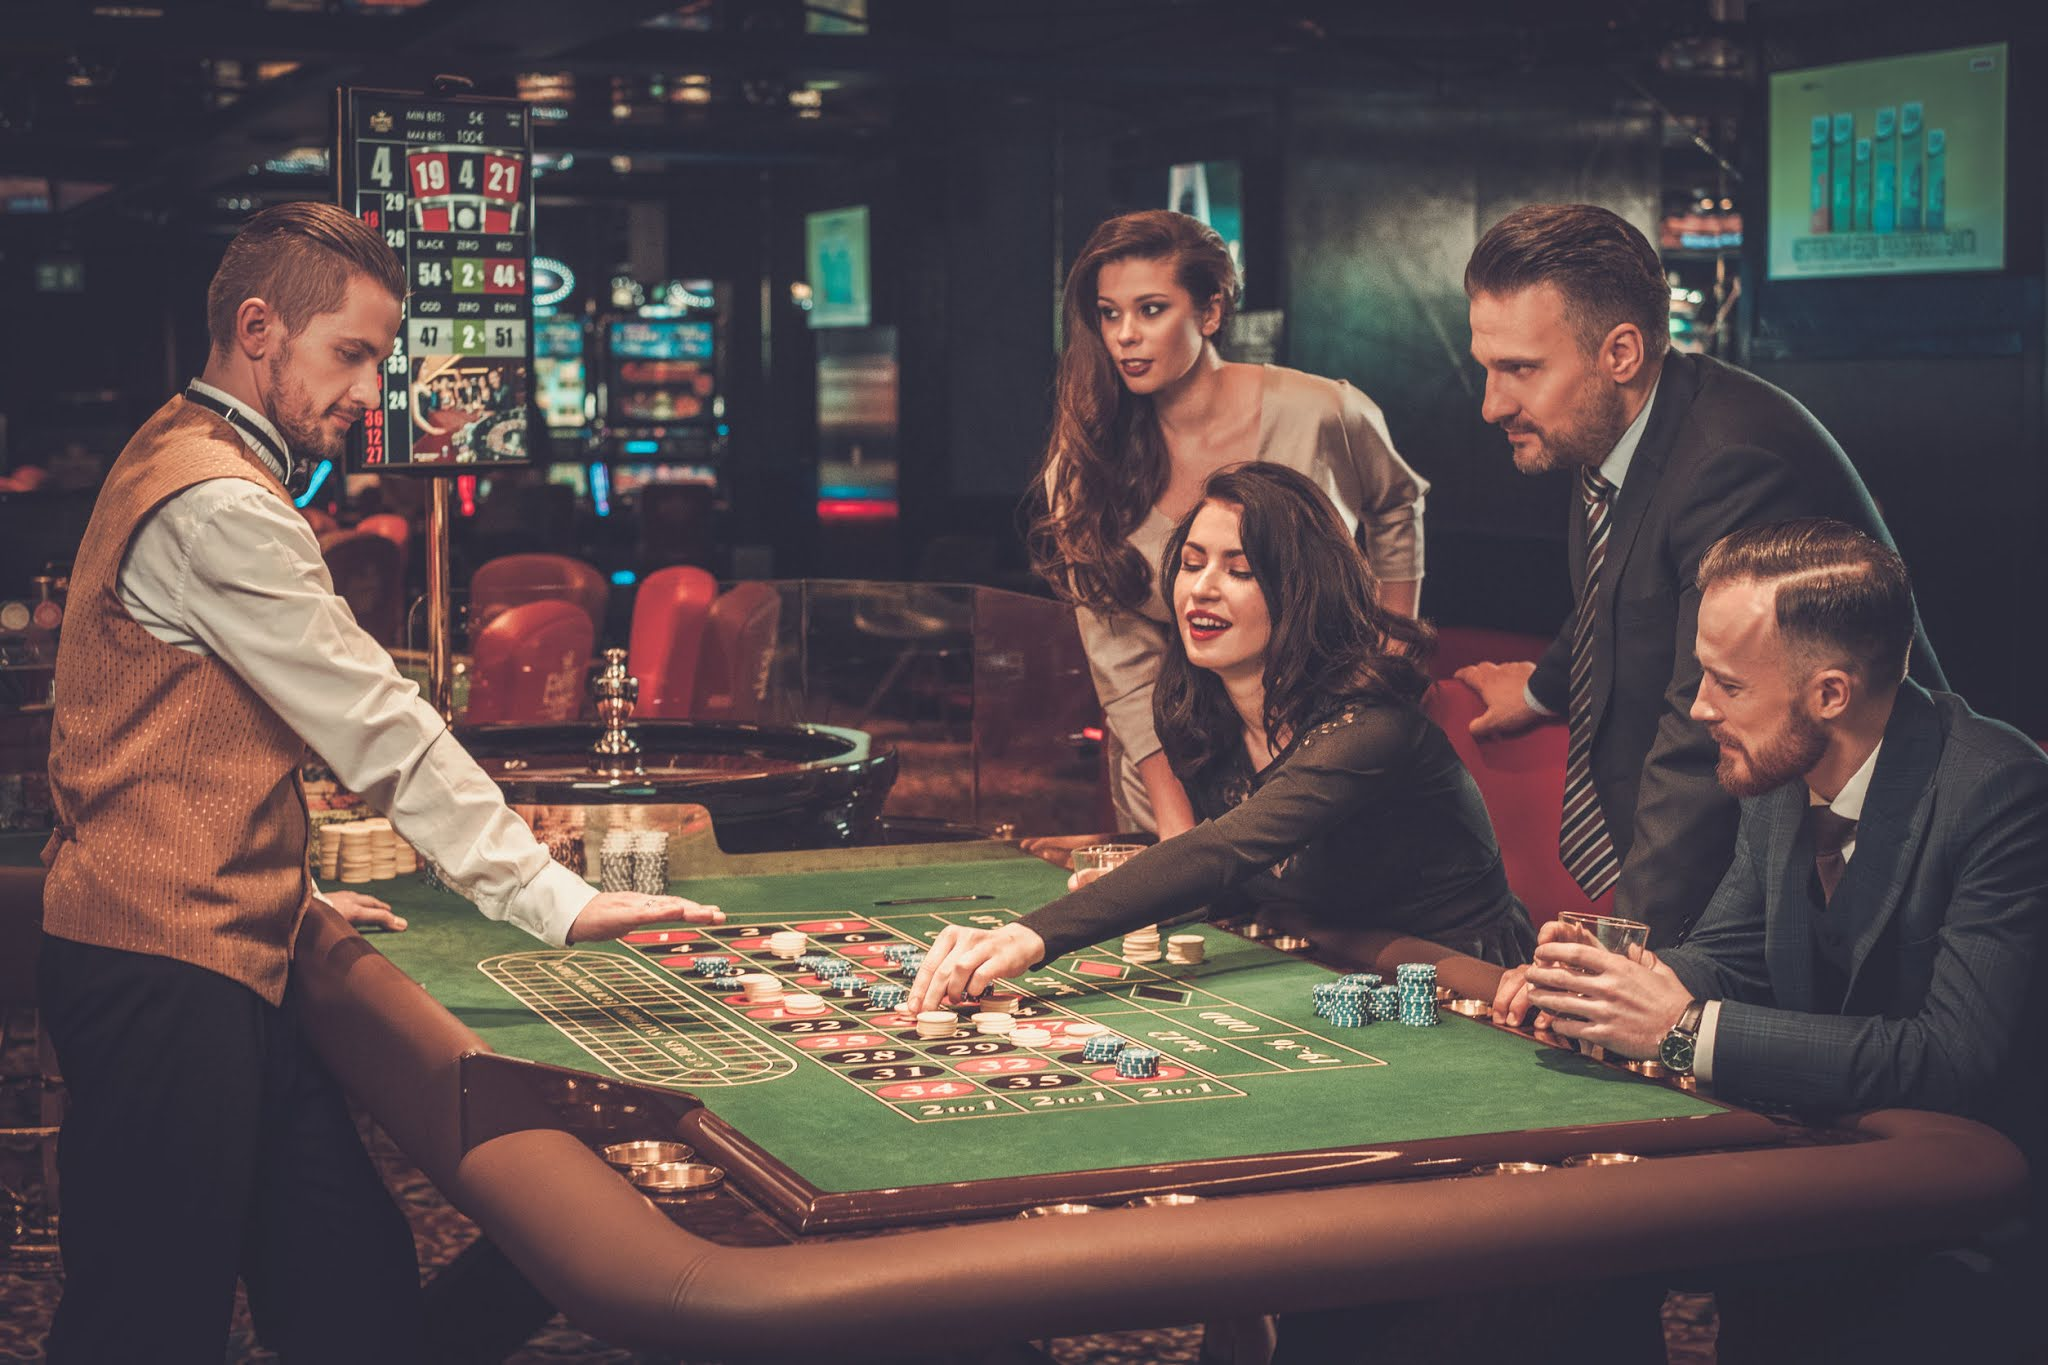 There is a plethora of stories about customers who were unlawfully' kicked out and banned from casinos around the world.